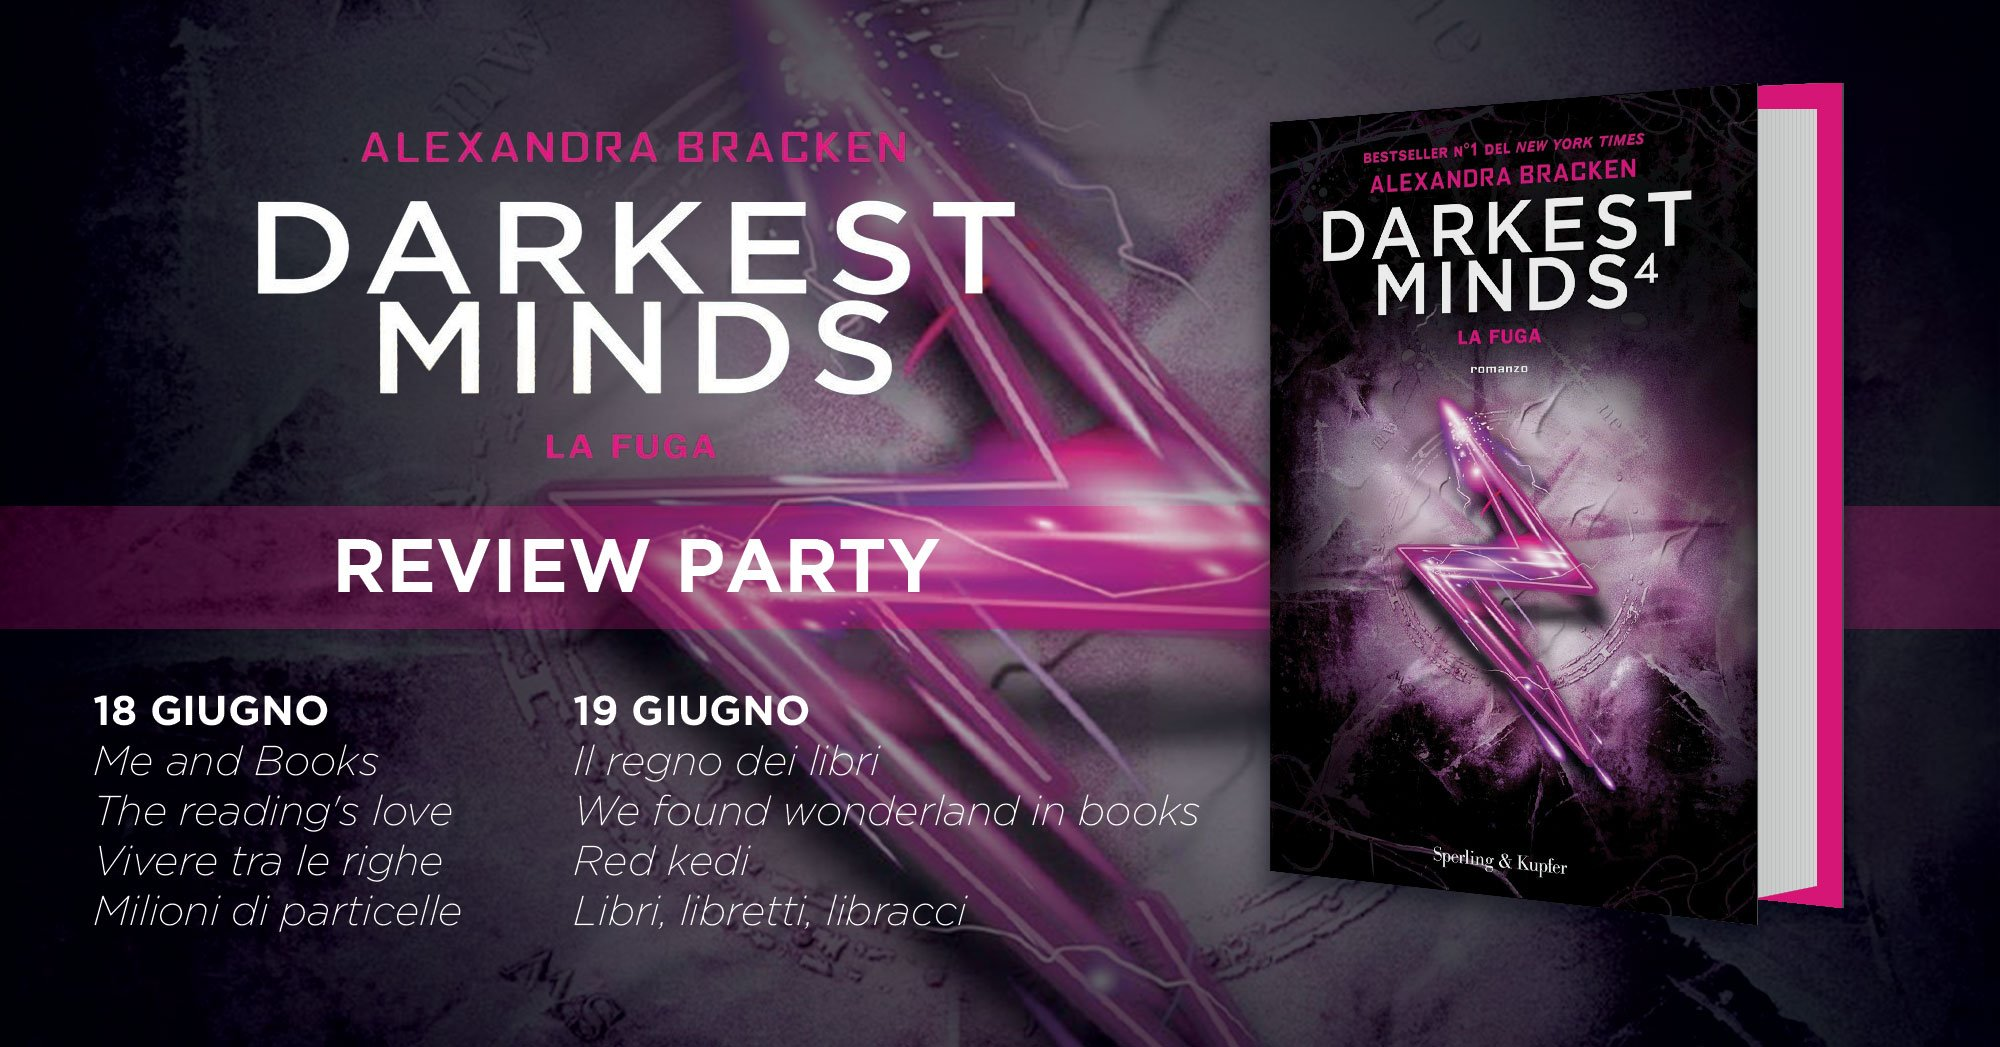 Review Party - Darkest Minds 4: la Fuga di Alexandra Bracken